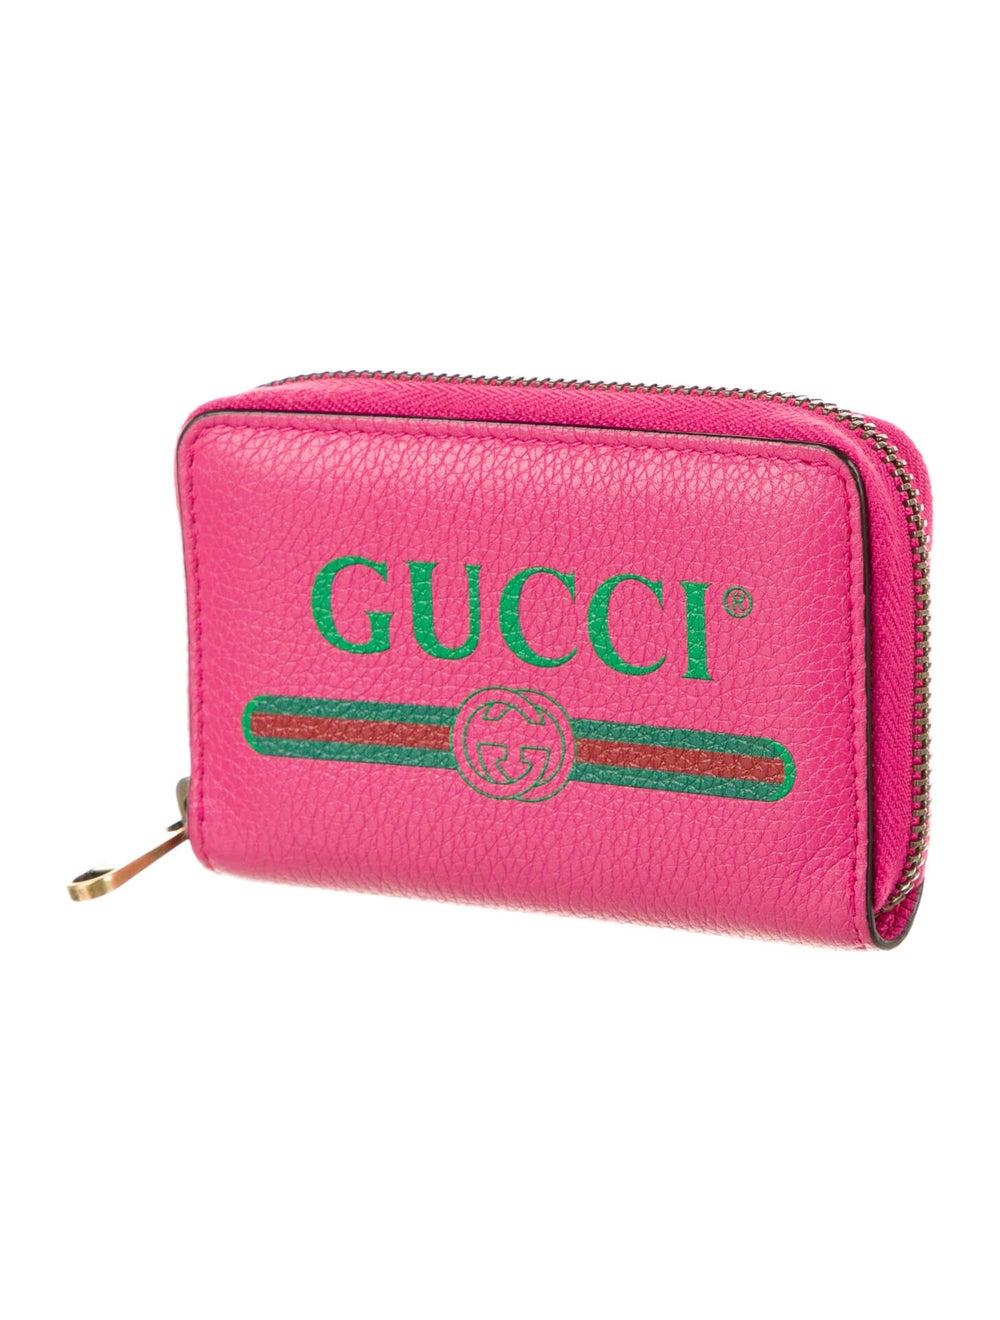 Gucci Web Accent Leather Compact Wallet Pink - image 3